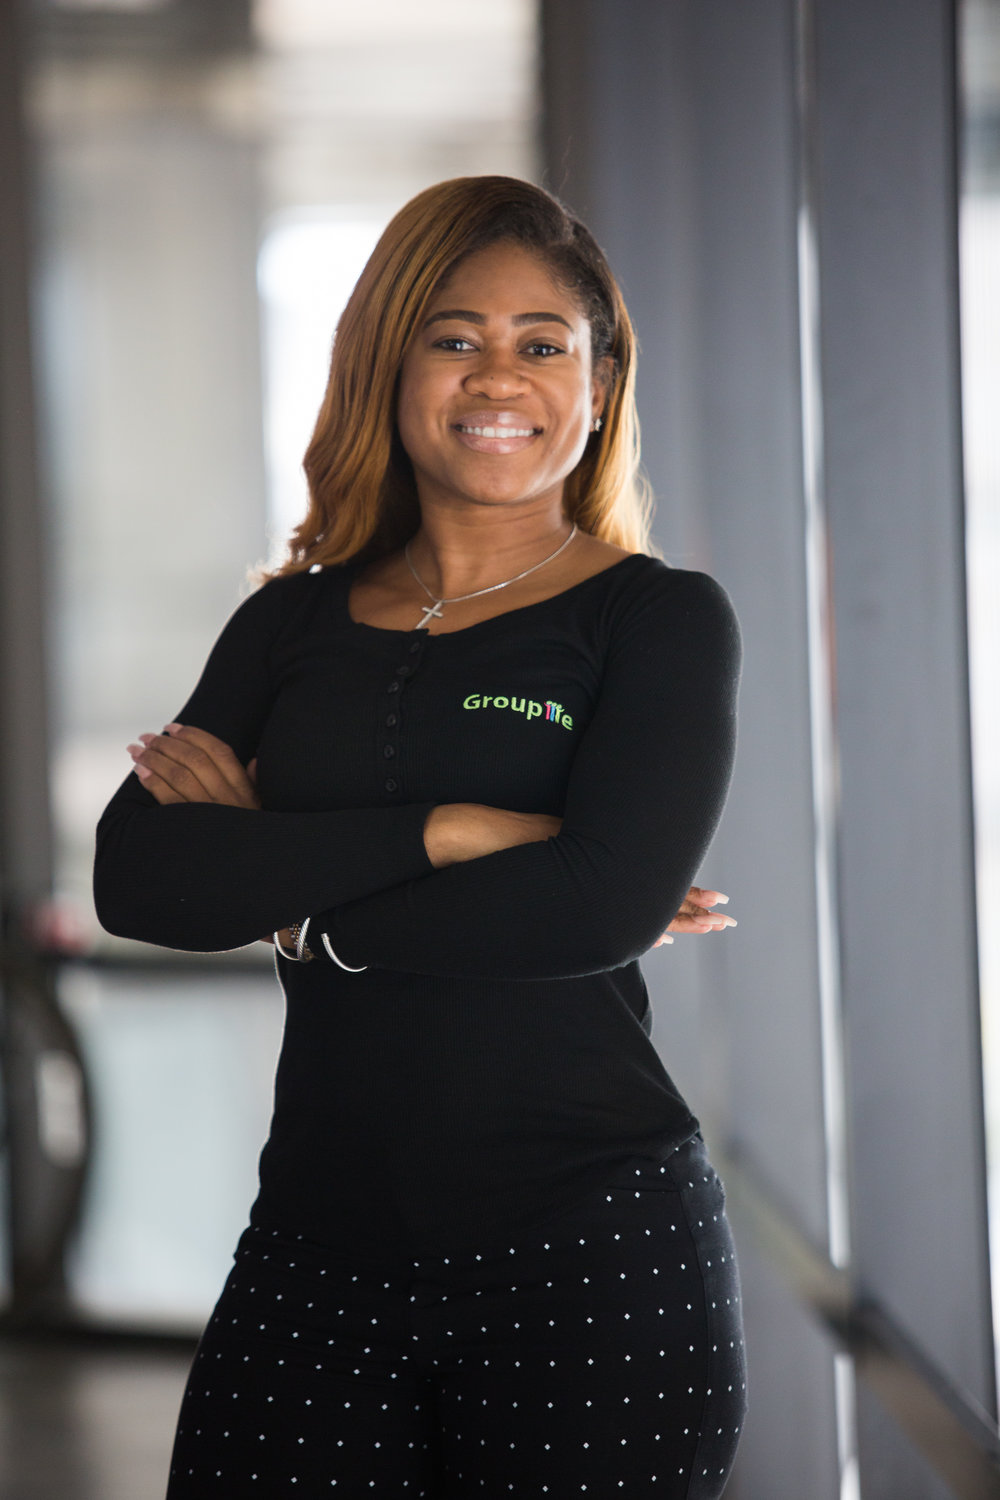 "Jonnie ""Jo"" Williams - Jonnie Williams possesses more than 10 years of management experience with detailed knowledge in community outreach, diversity engagement, and communications. She has run and participated in a number of impactful community programs in the city of Atlanta. Her passion lies in developing and implementing economic development programs to encourage economic success within low income communities.Groupiiie is a technology-based platform that provides a space to coordinate activities and actions with others. By connecting with others via activities that one likes or by trying new things, Groupiiie encourages interacting with diverse people and experiences. The purpose of Groupiiie is to encourage action, not only action through physical activities, but by doing activities with people you do not know thus engaging in social action. Her vision for Groupiiie is to create a platform that removes walls of personal perception in order to meet new people and create new experiences that are generated by the users in the interests of the users."